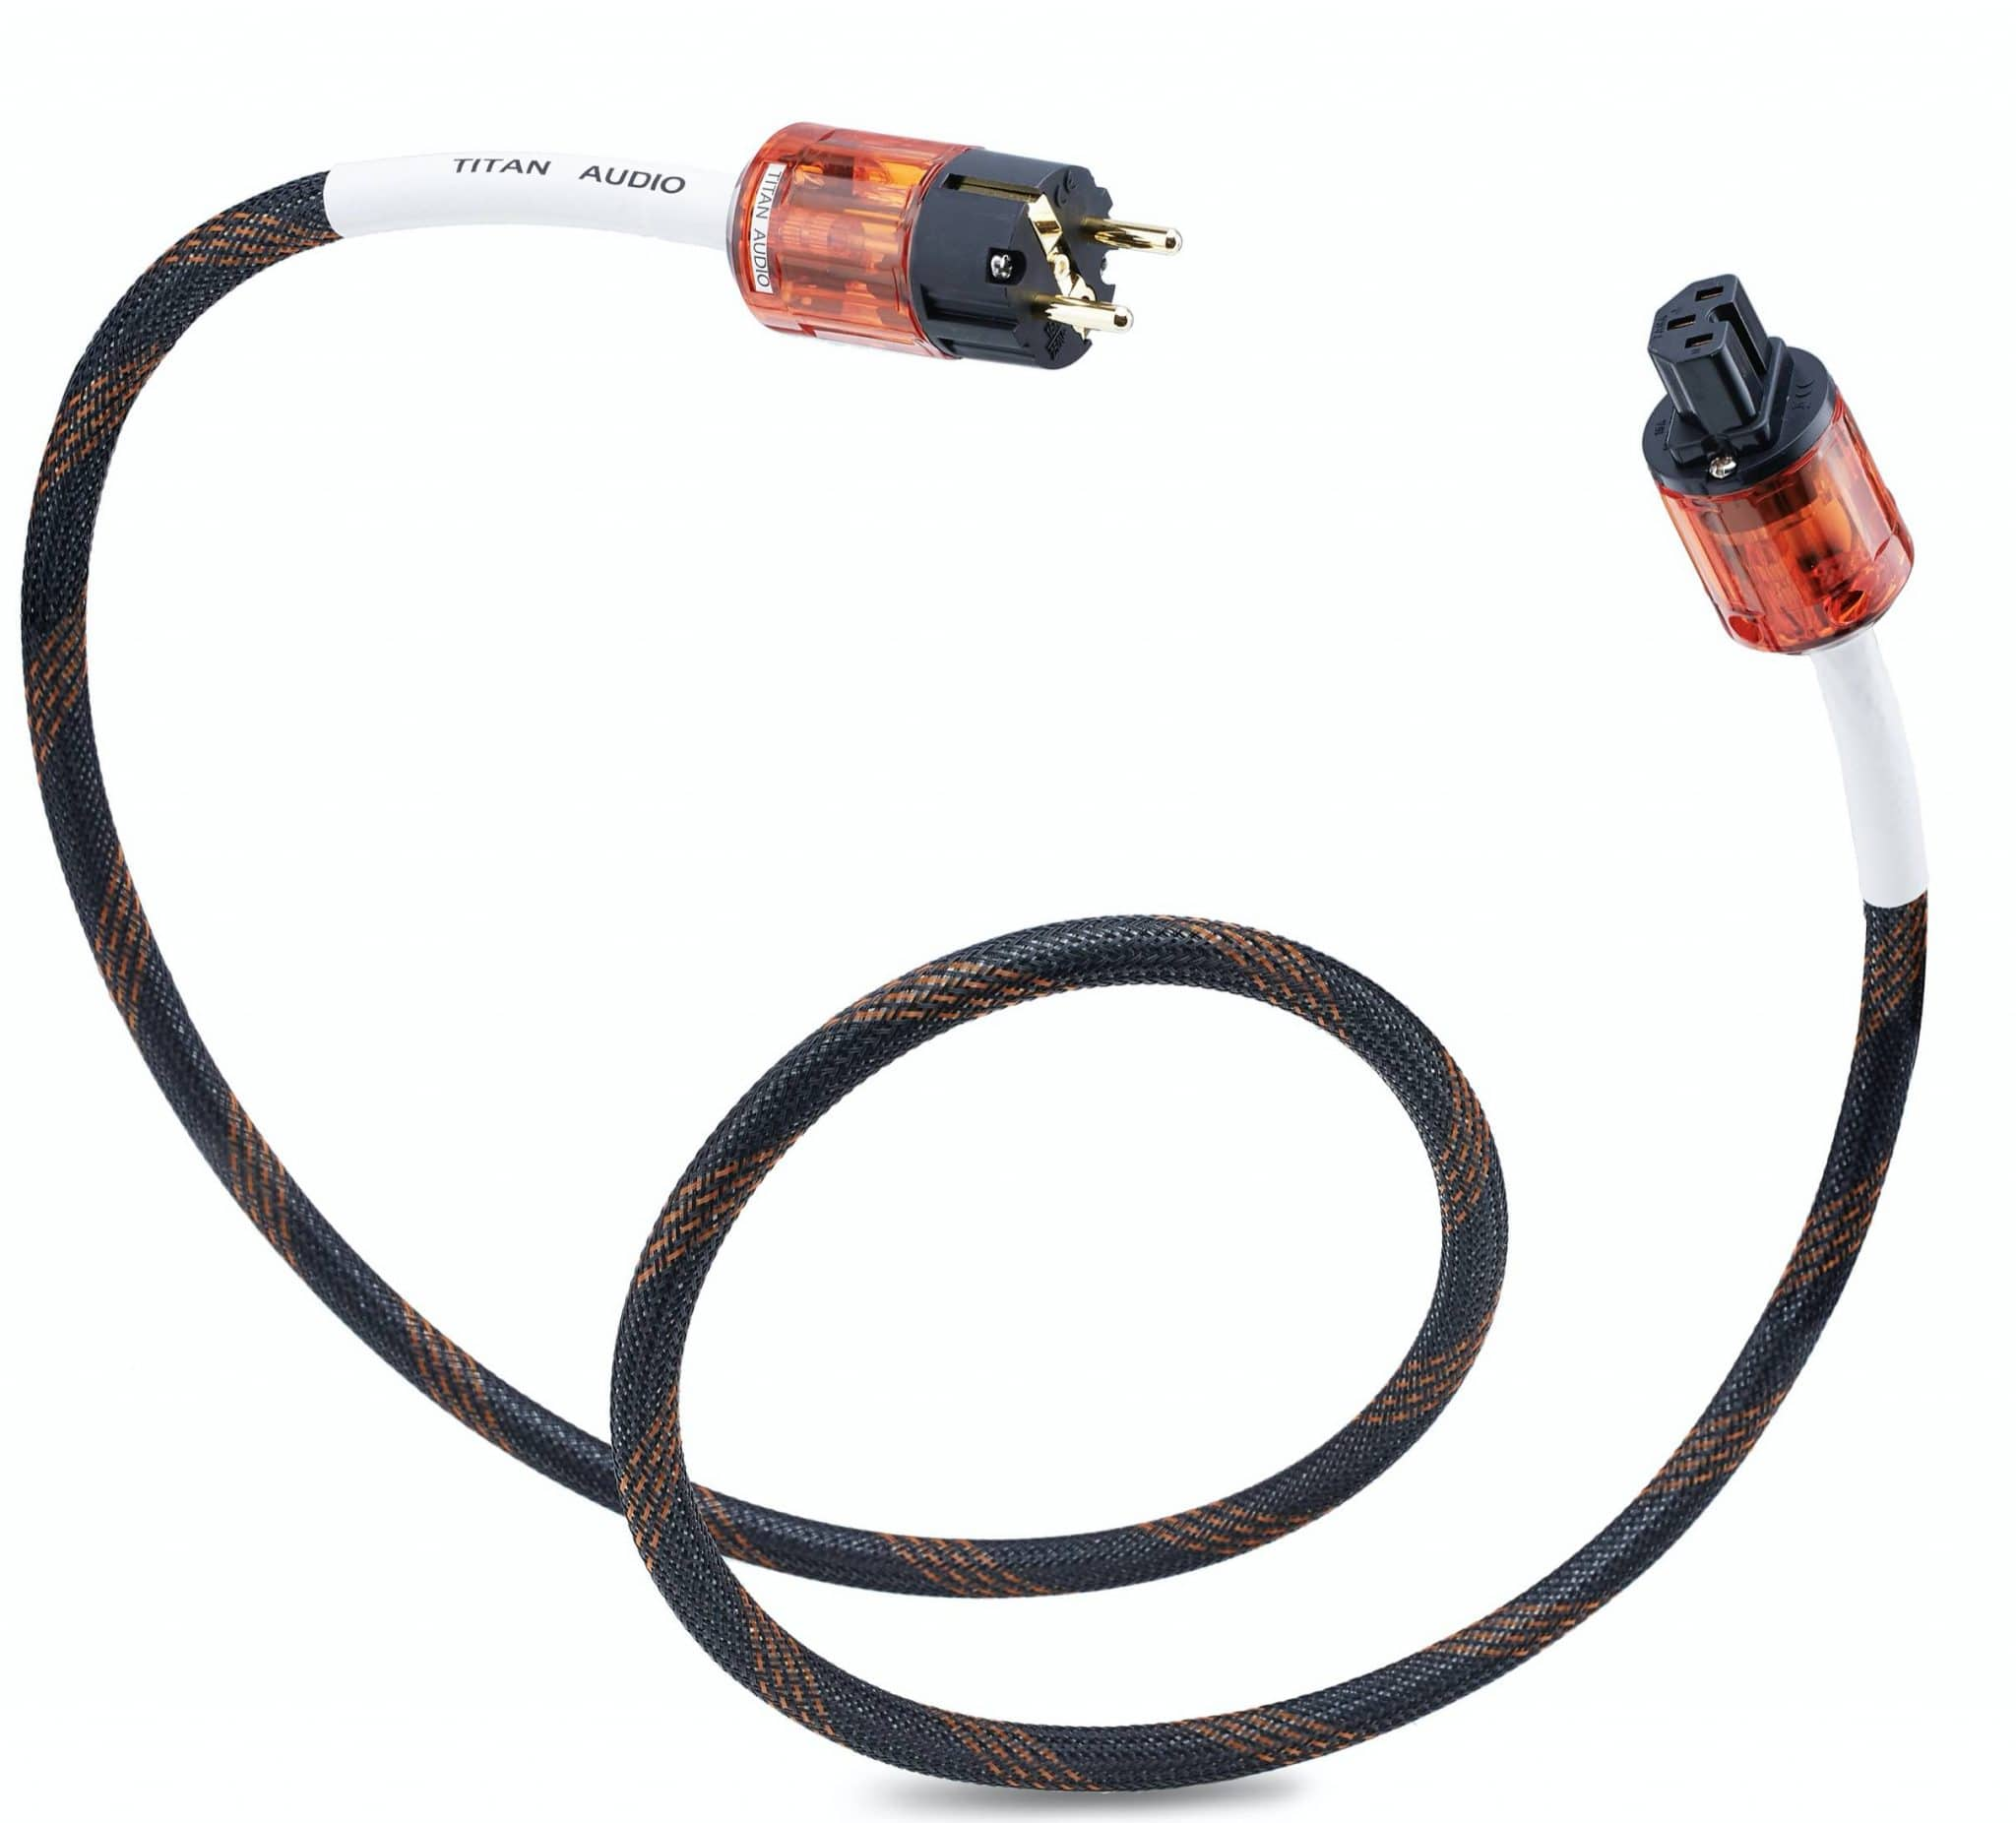 Nyx Mains Cable From Titan Audio - The Audiophile Man